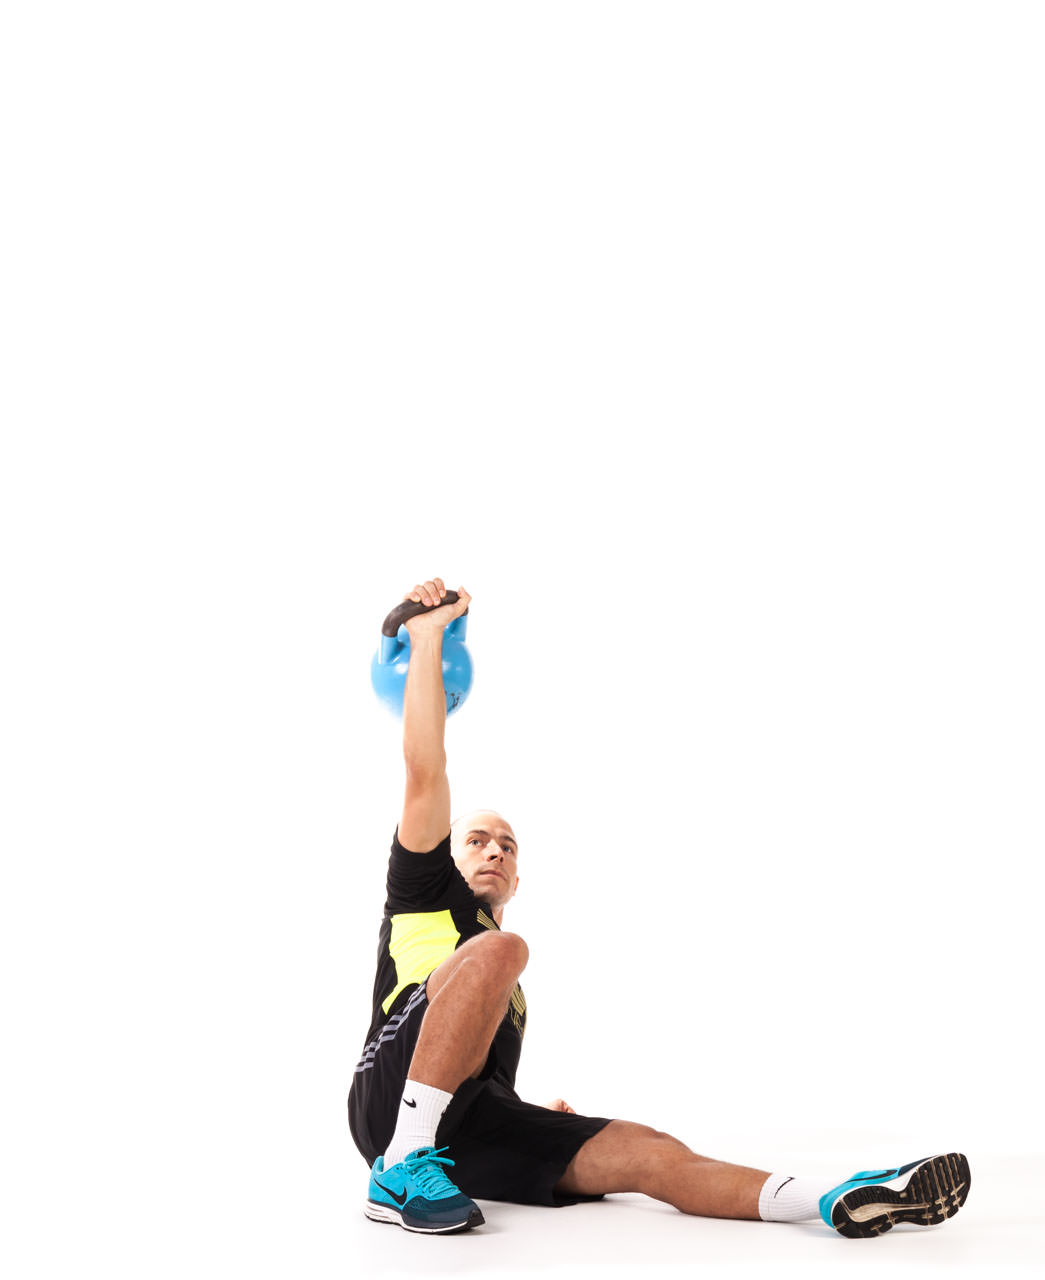 Kettlebell Turkish Get Up frame #2